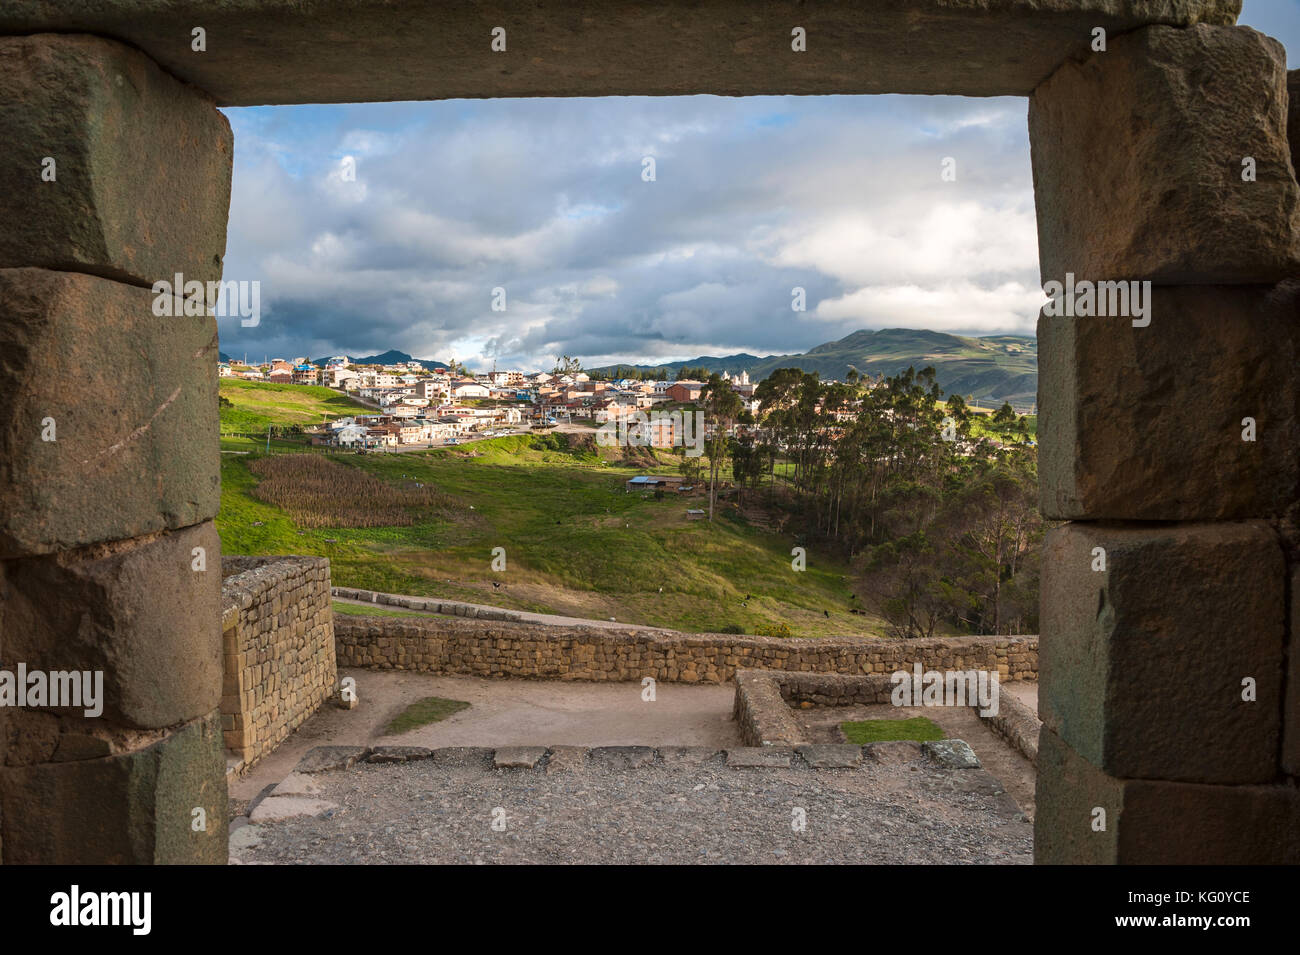 Ingapirca Inca wall, largest known Inca ruins in Ecuador, and new town - Stock Image